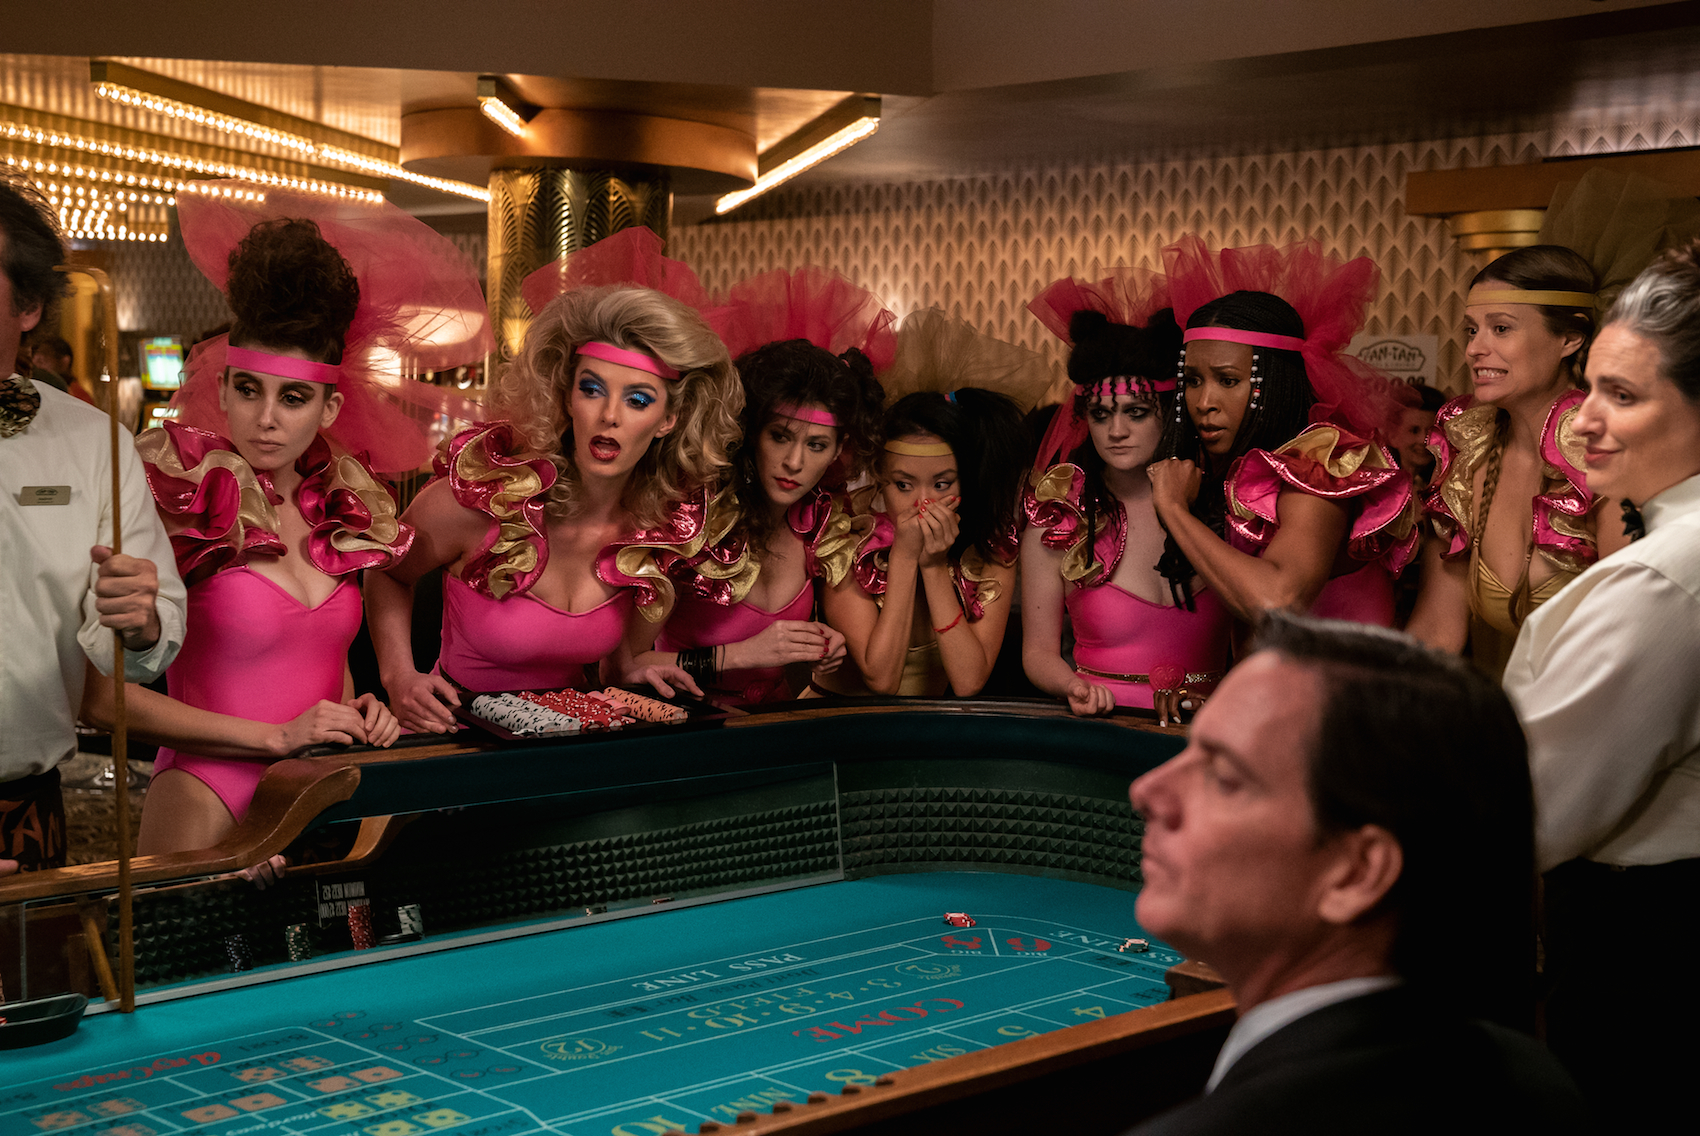 'GLOW' Season 3 First Look: All That Neon Fits Right in on the Vegas Strip